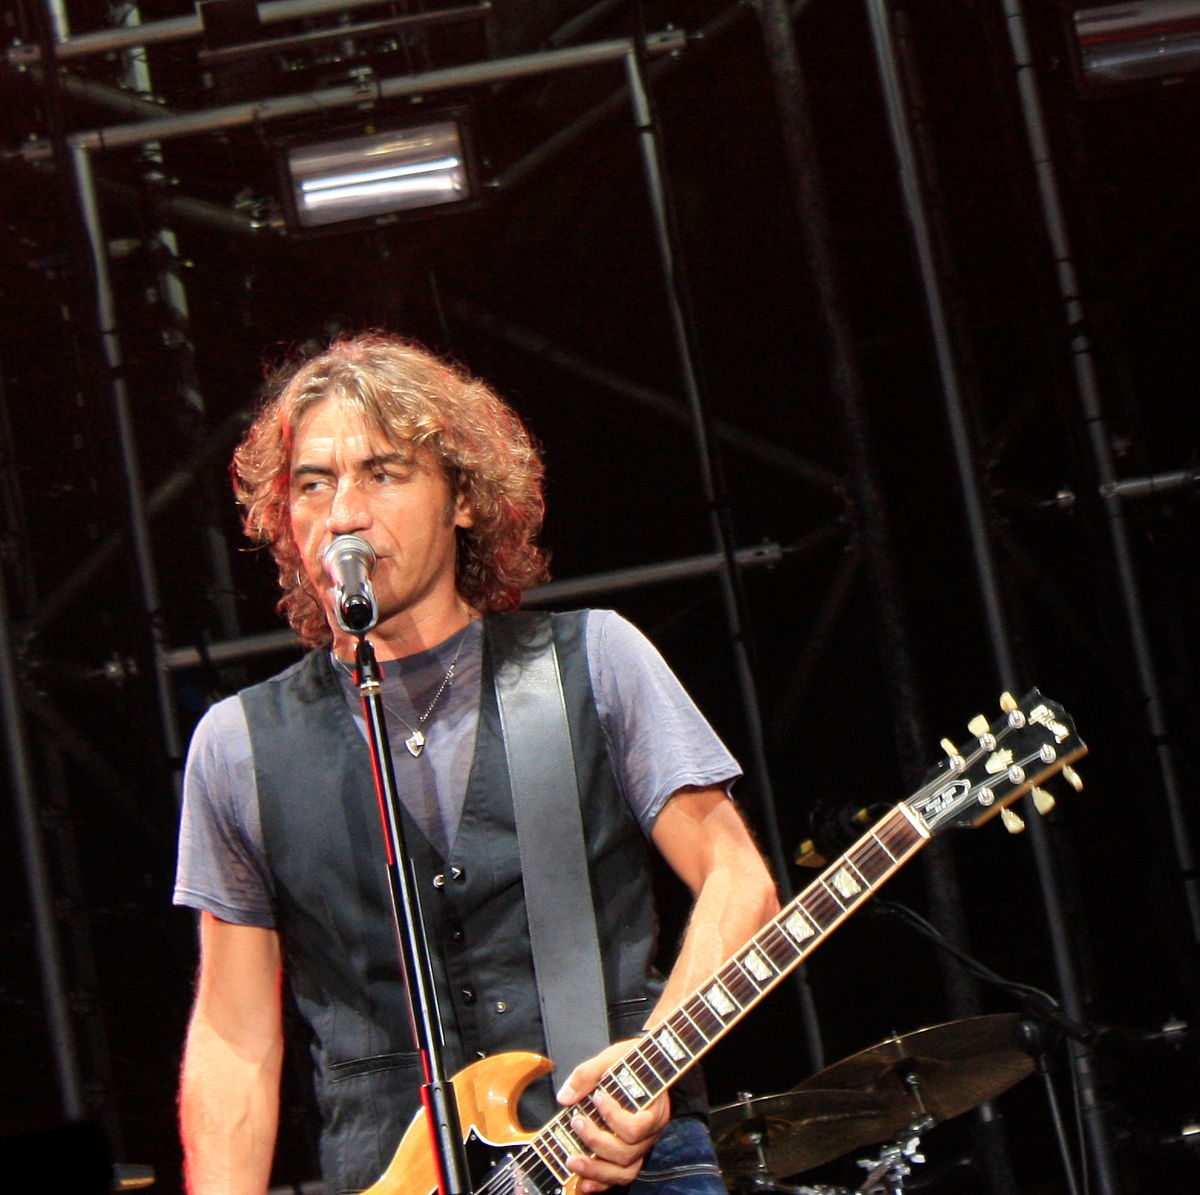 ligabue - photo #1